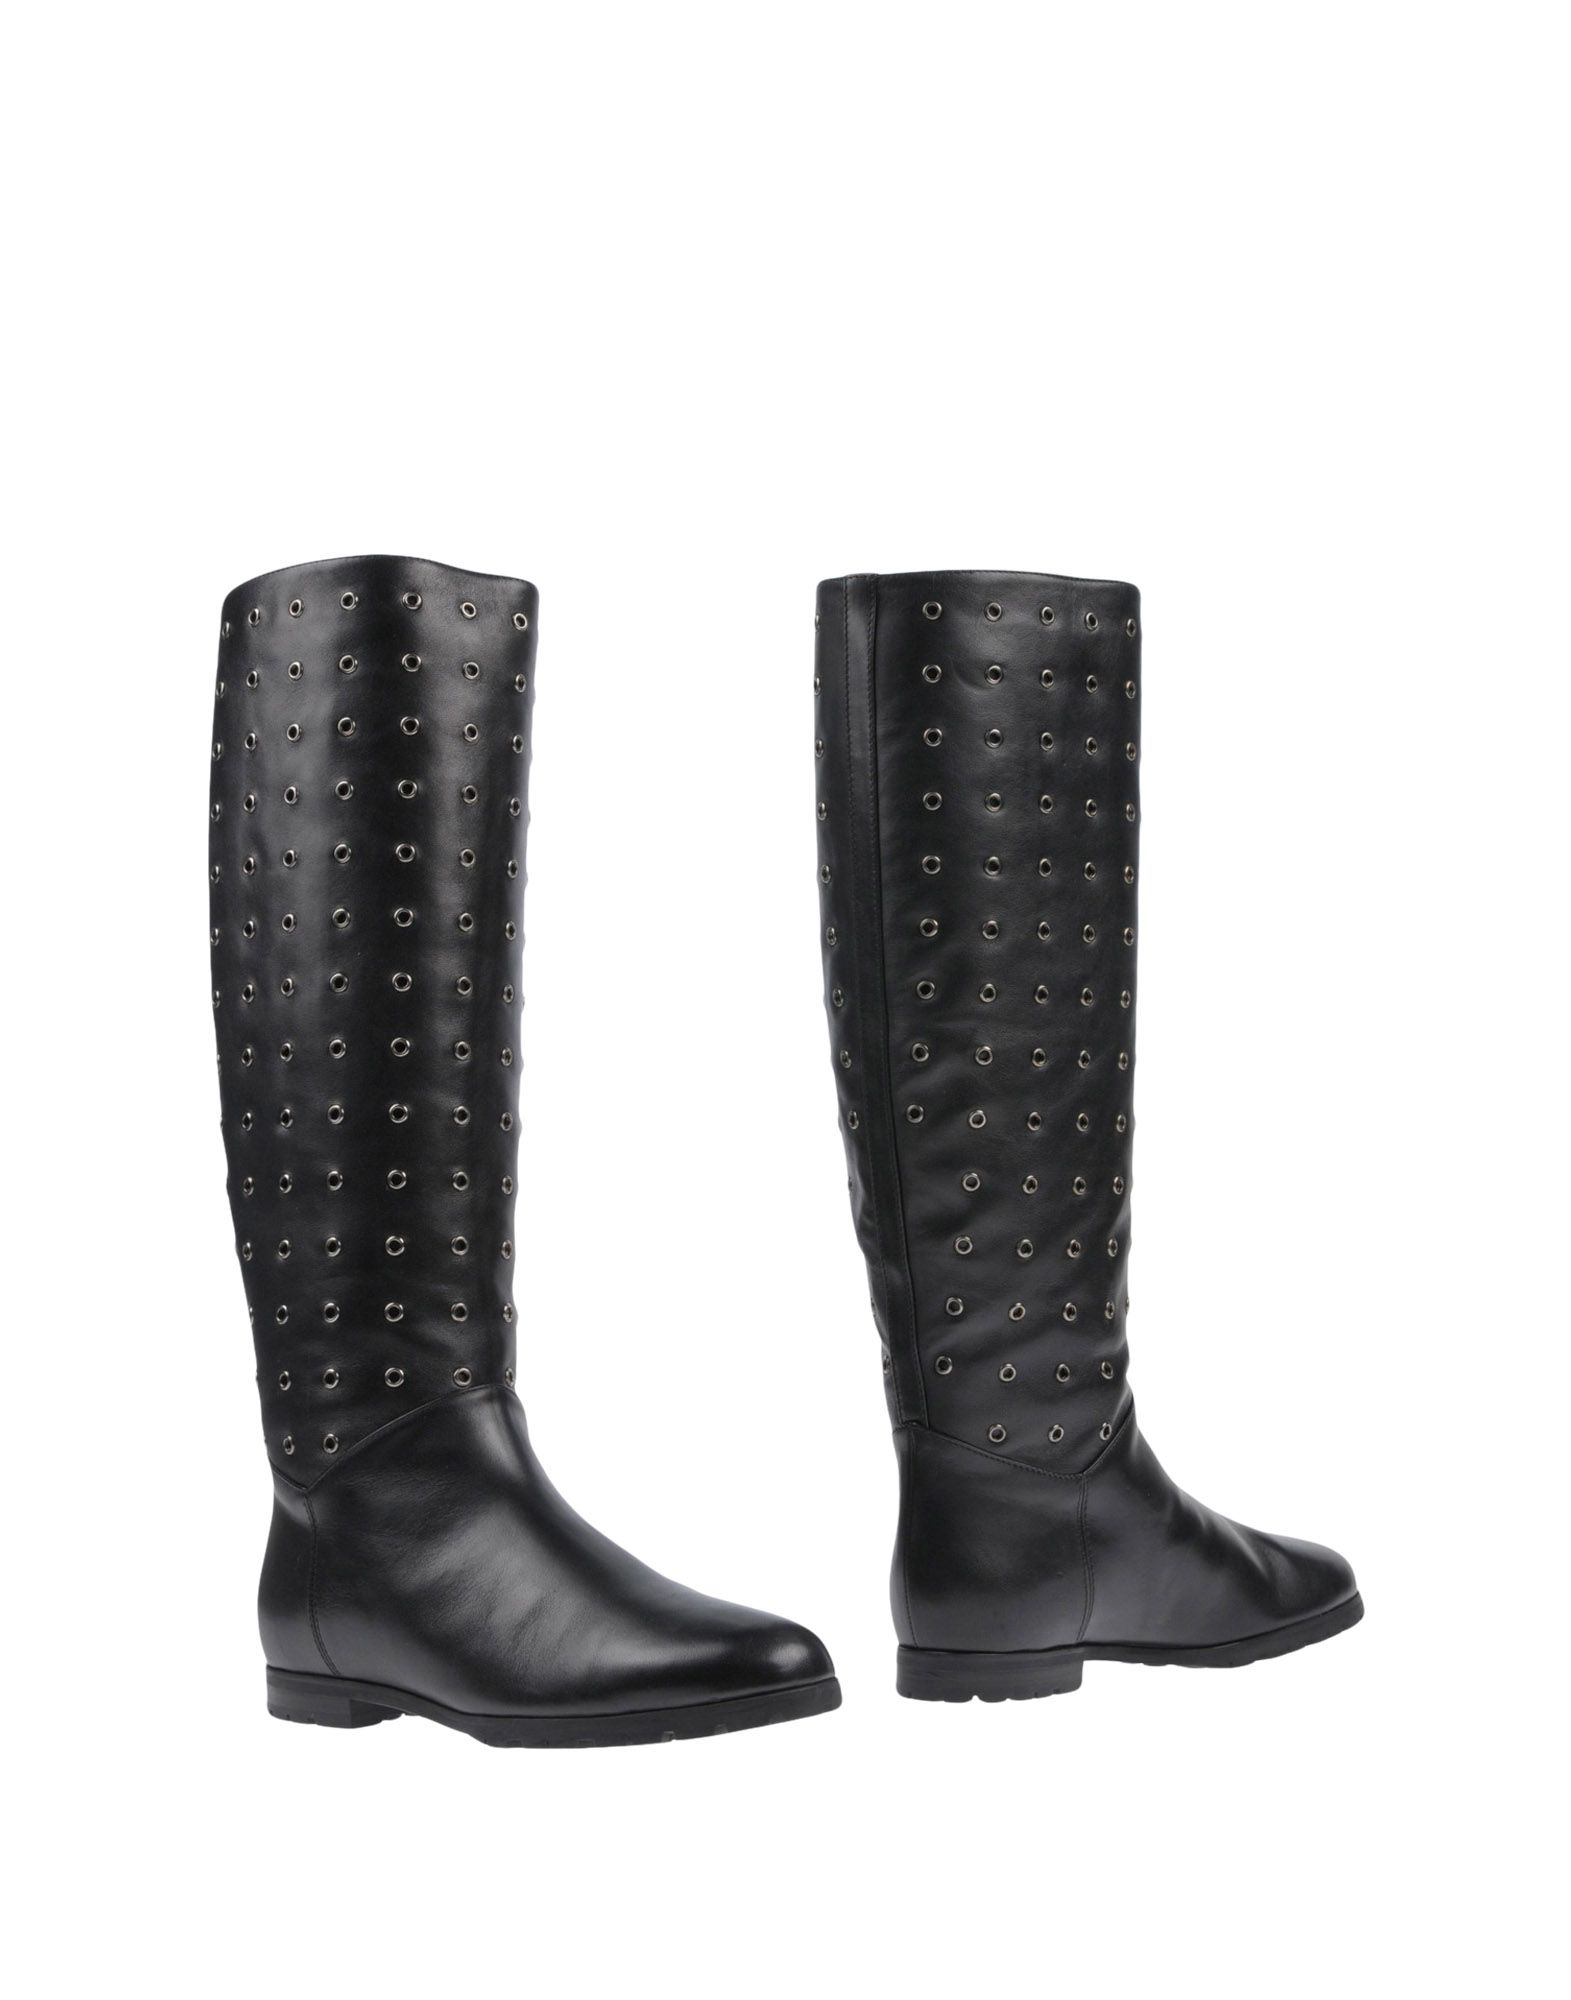 A.TESTONI Boots in Black